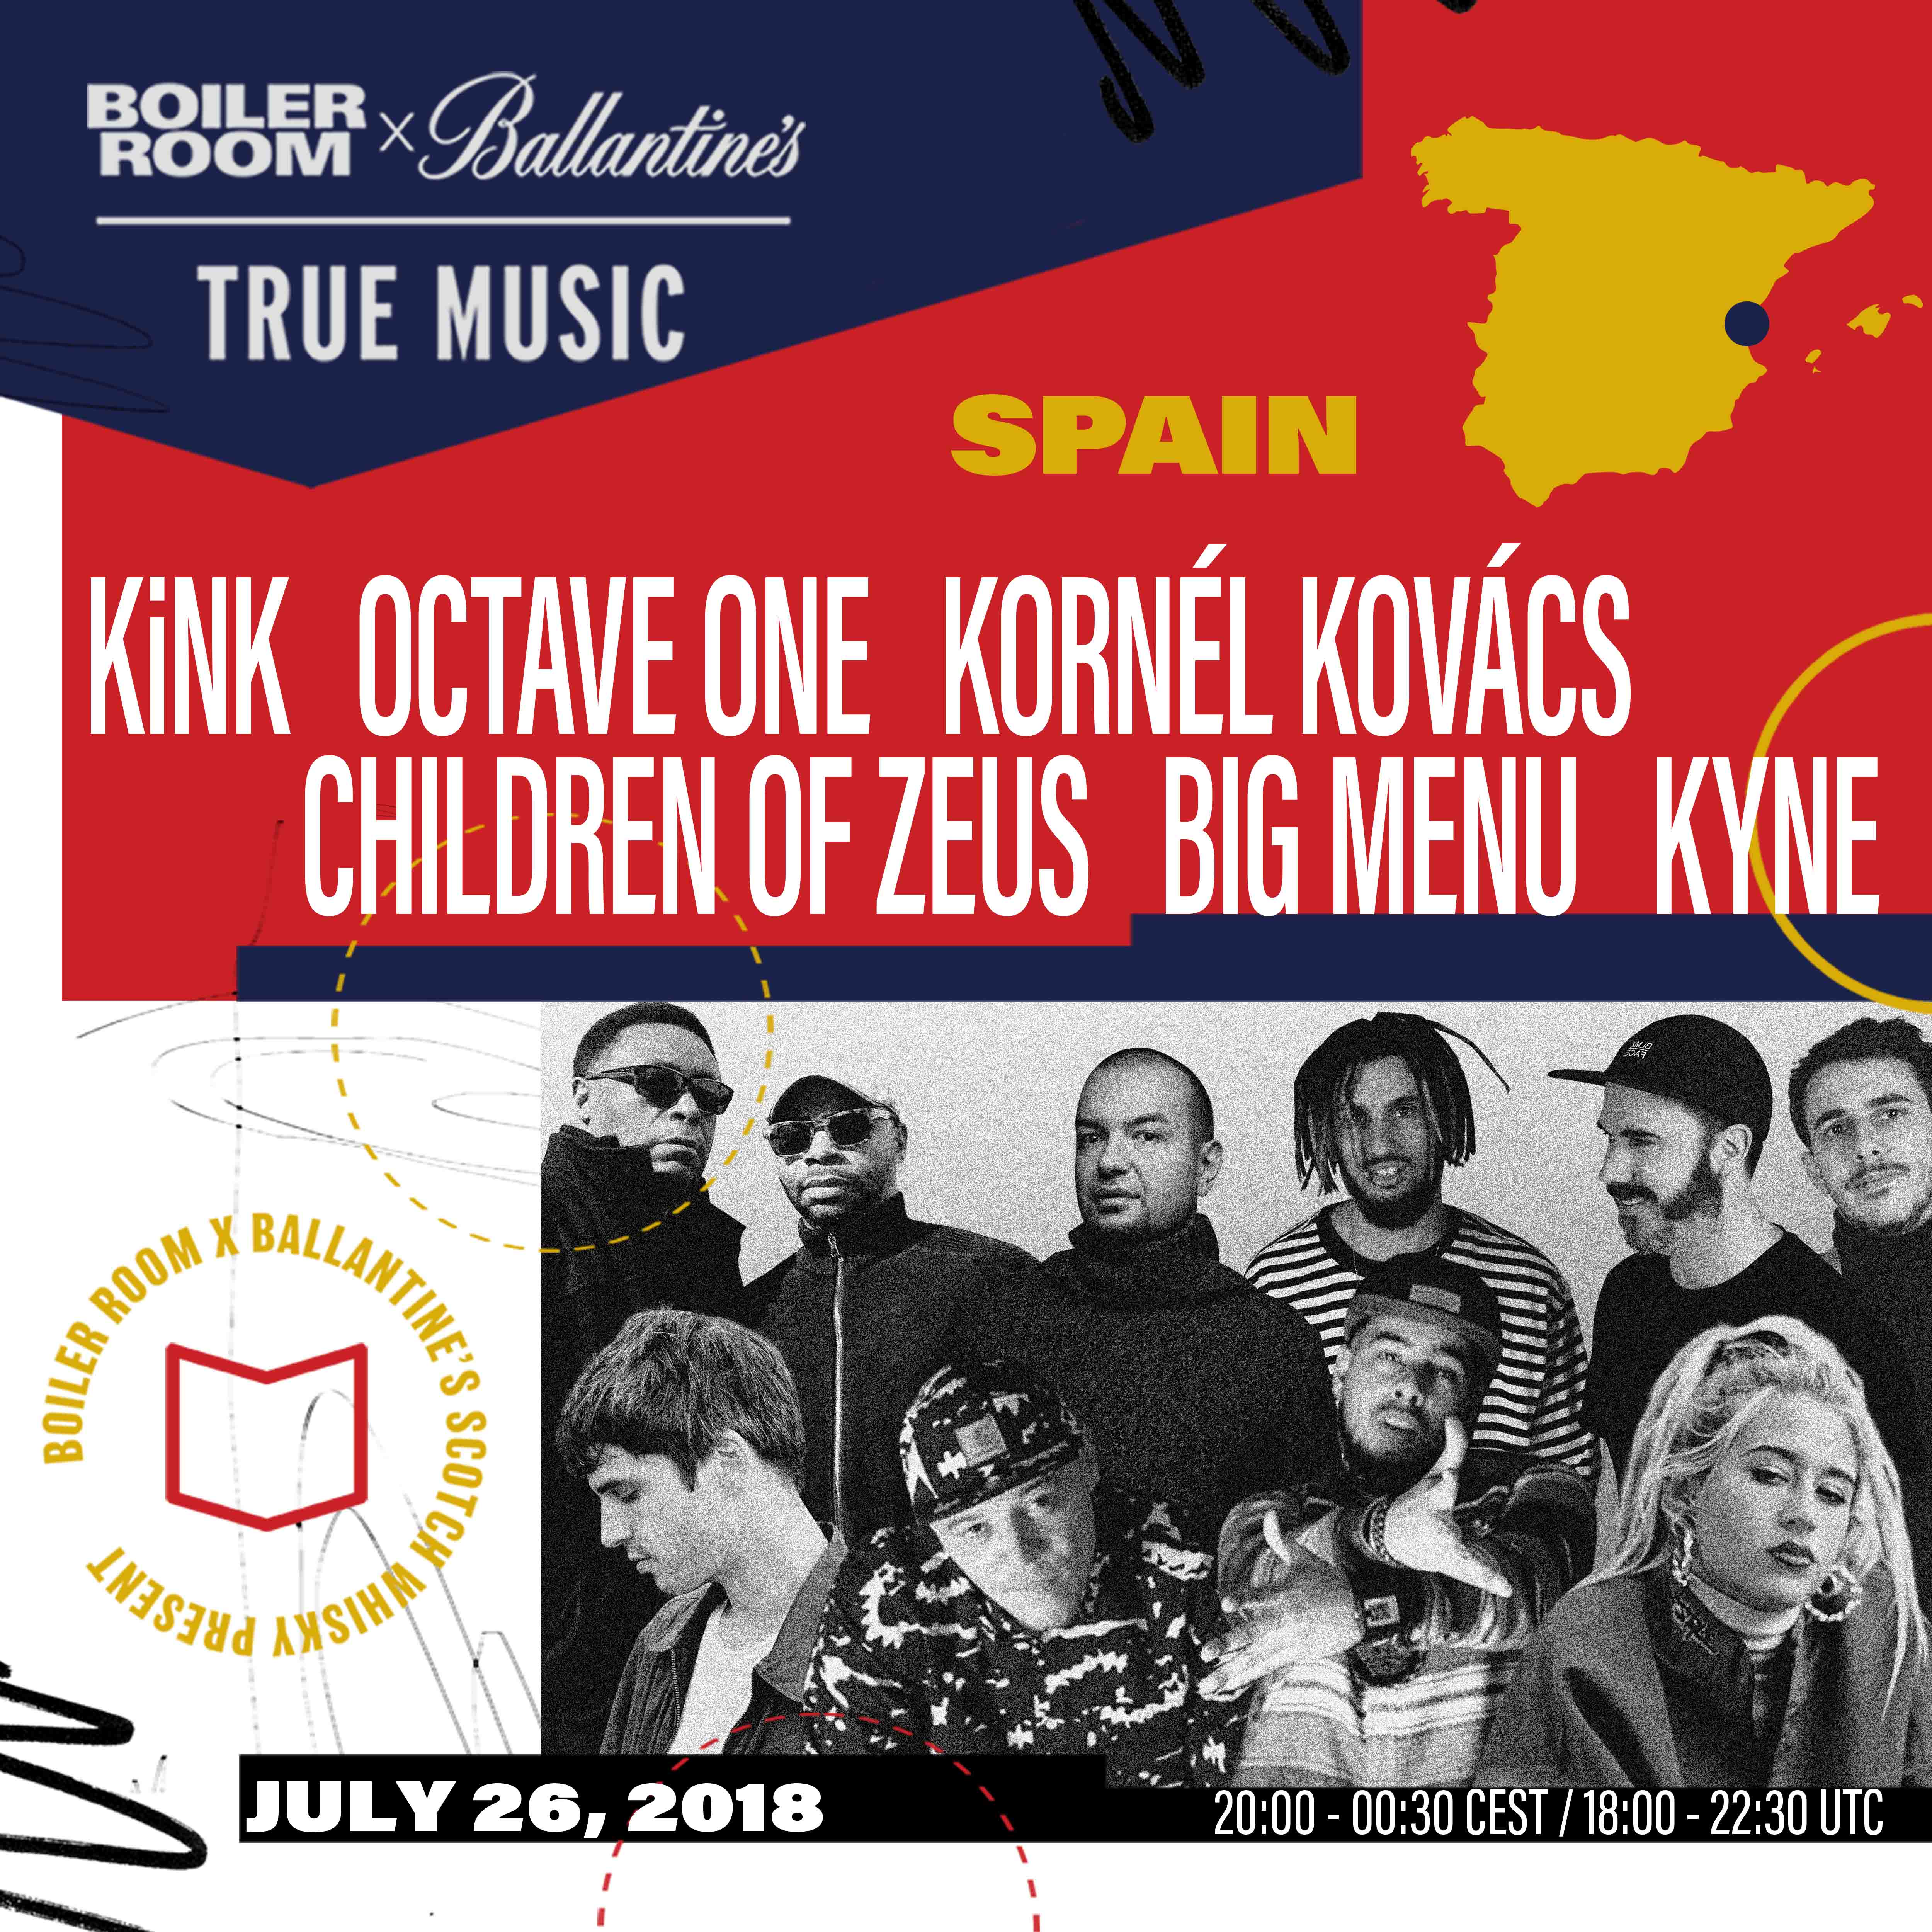 KiNK and Octave One to play final Boiler Room x Ballantine's True Music: Hybrid Sounds show in Valencia